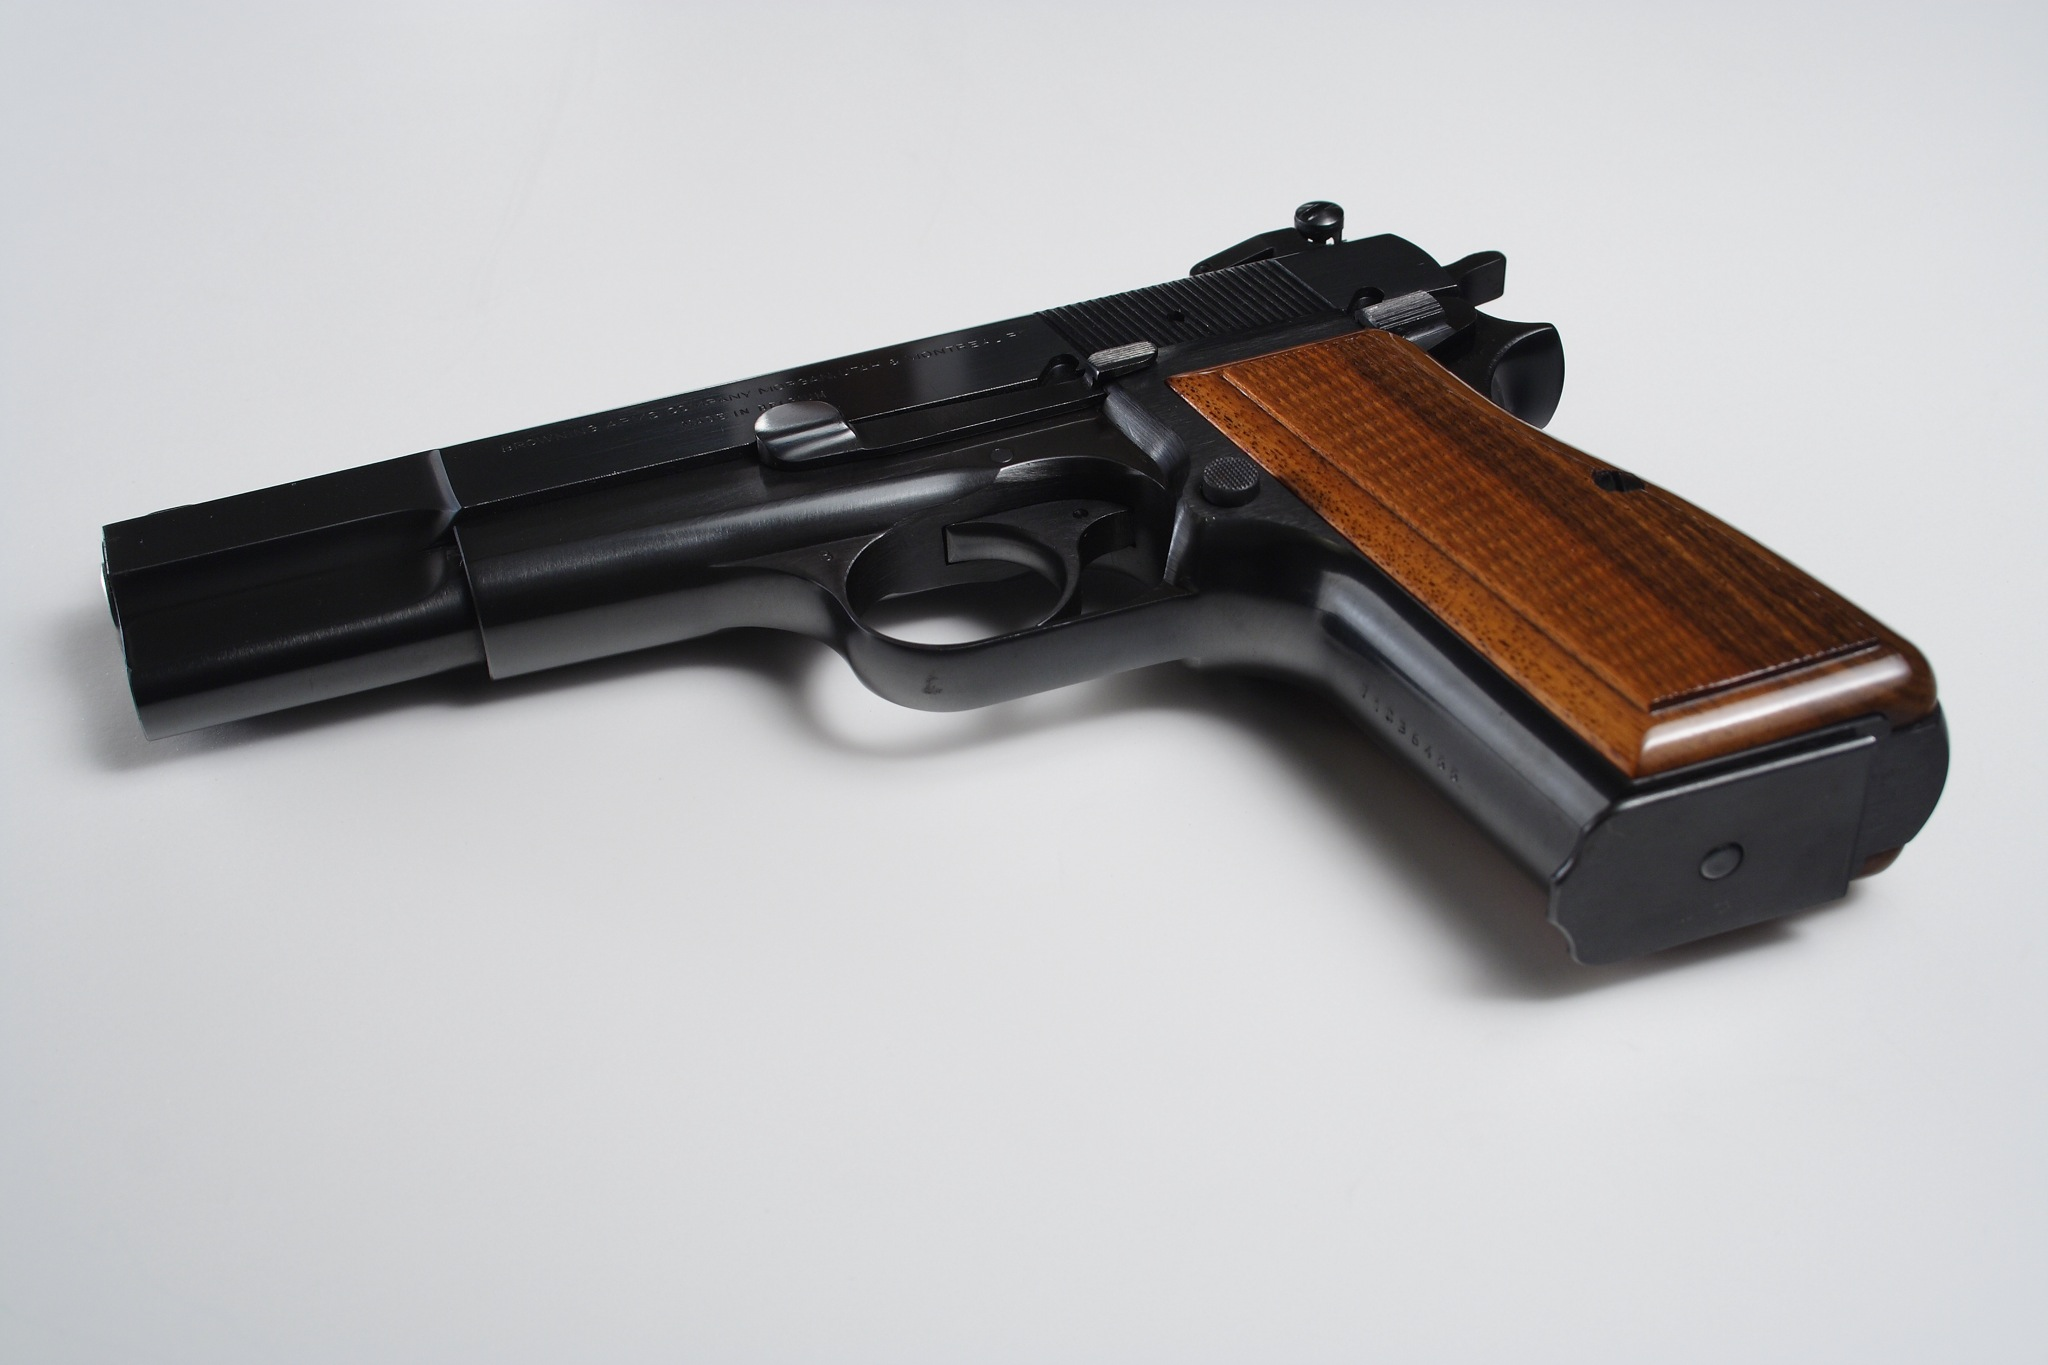 browning hi power review specs and opinion pics